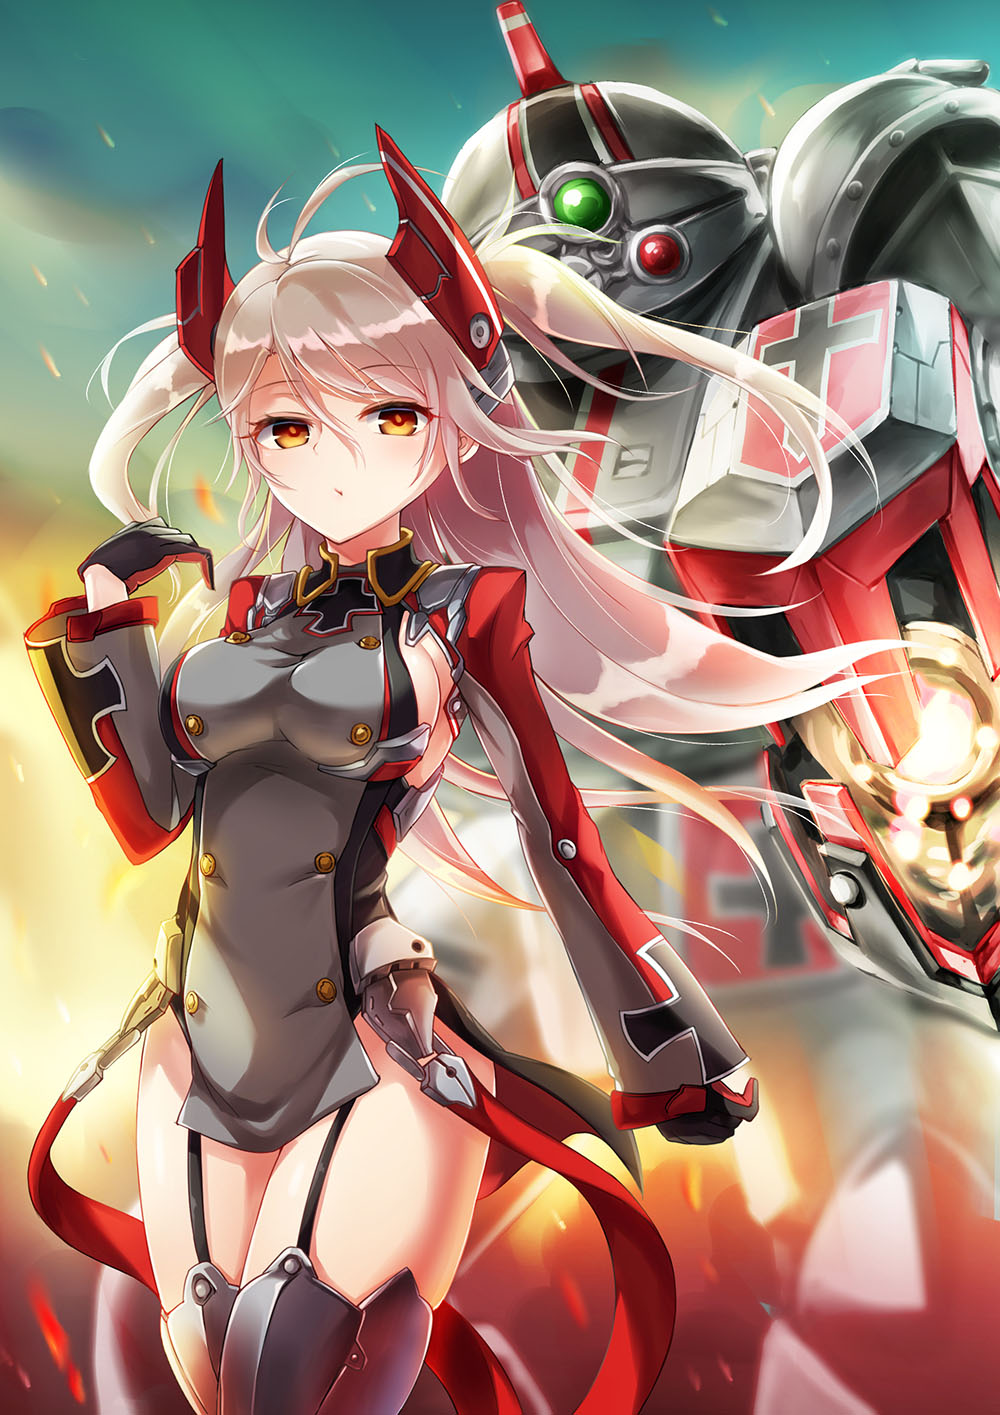 1girl armor armored_boots azur_lane bangs boots breasts cowboy_shot dress embers evening eyebrows_visible_through_hair garter_straps german_flag gloves hair_between_eyes headgear highres iron_cross long_hair long_sleeves mecha medium_breasts oshishio outdoors prinz_eugen_(azur_lane) short_dress shrug_(clothing) sideboob silver_hair soukou_kihei_votoms thigh-highs thigh_boots thighs two_side_up wind yellow_eyes